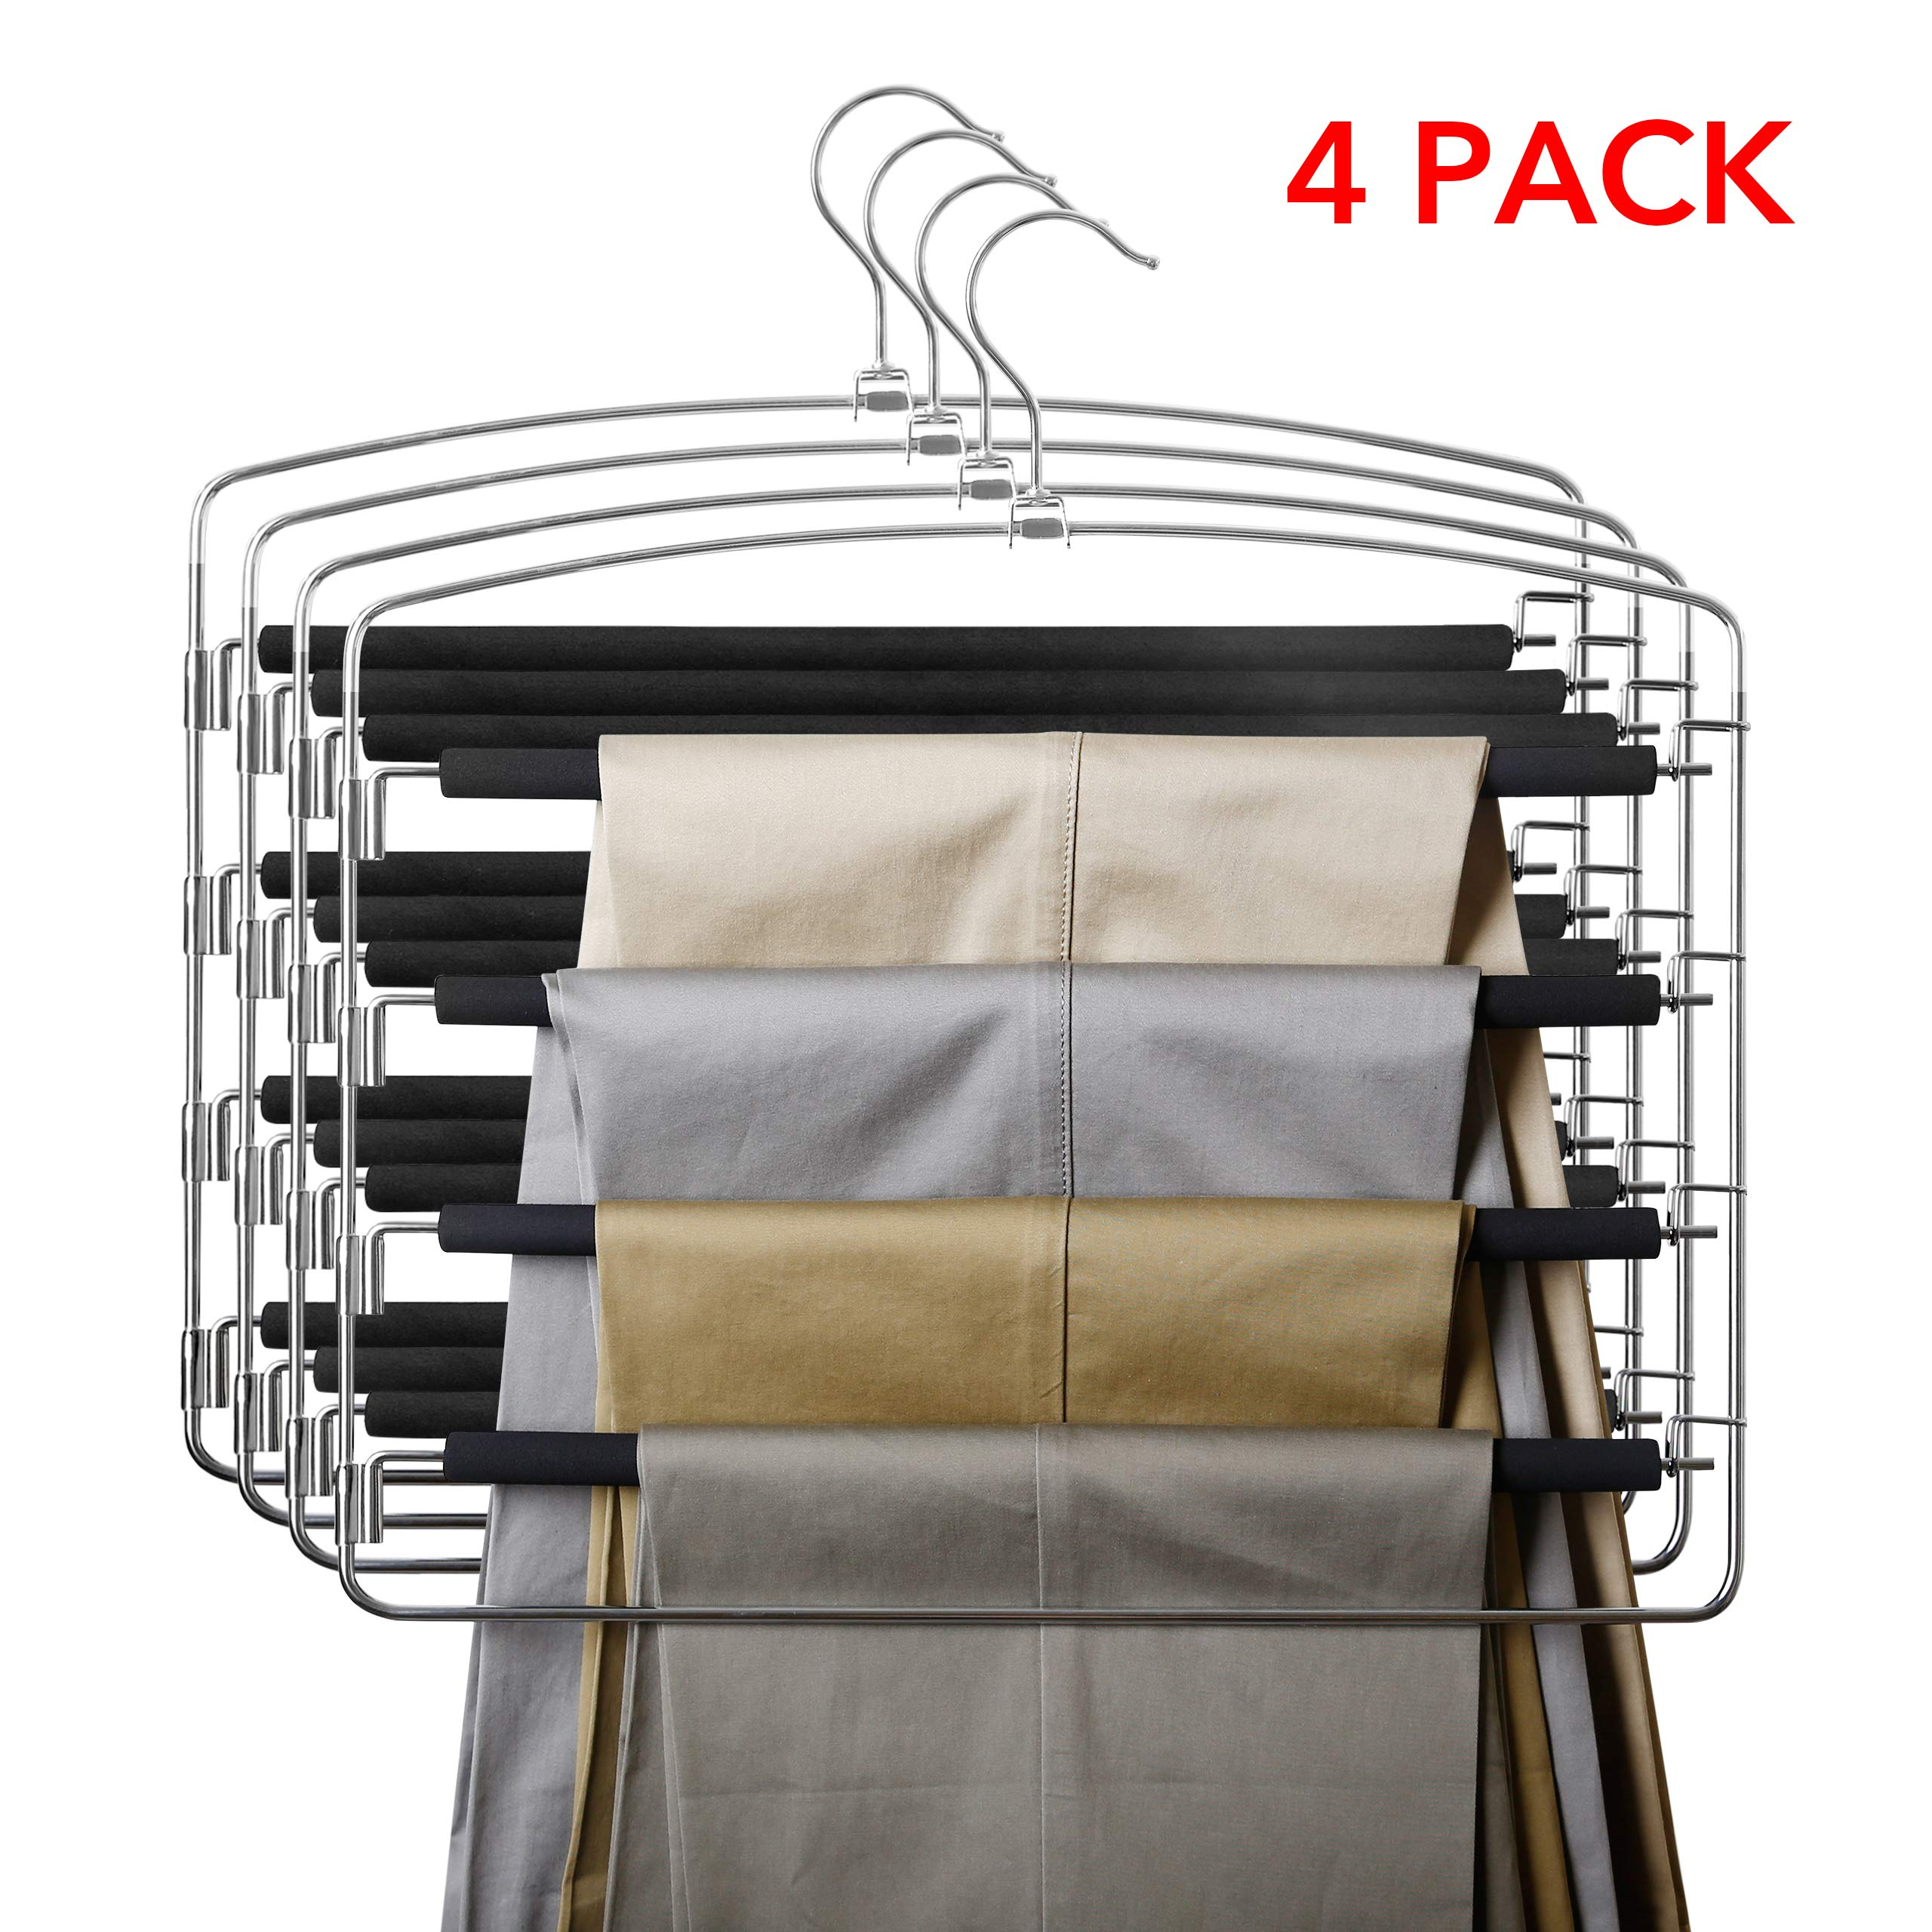 MoMA Pants Hangers (4 Pack) - Space Saving Closet Storage Organizer for Pants Jeans Trousers Scarf - Slack Hanger with Non-Slip Foam Padded Swing Arm - 16.7''H x 16''L by MoMA